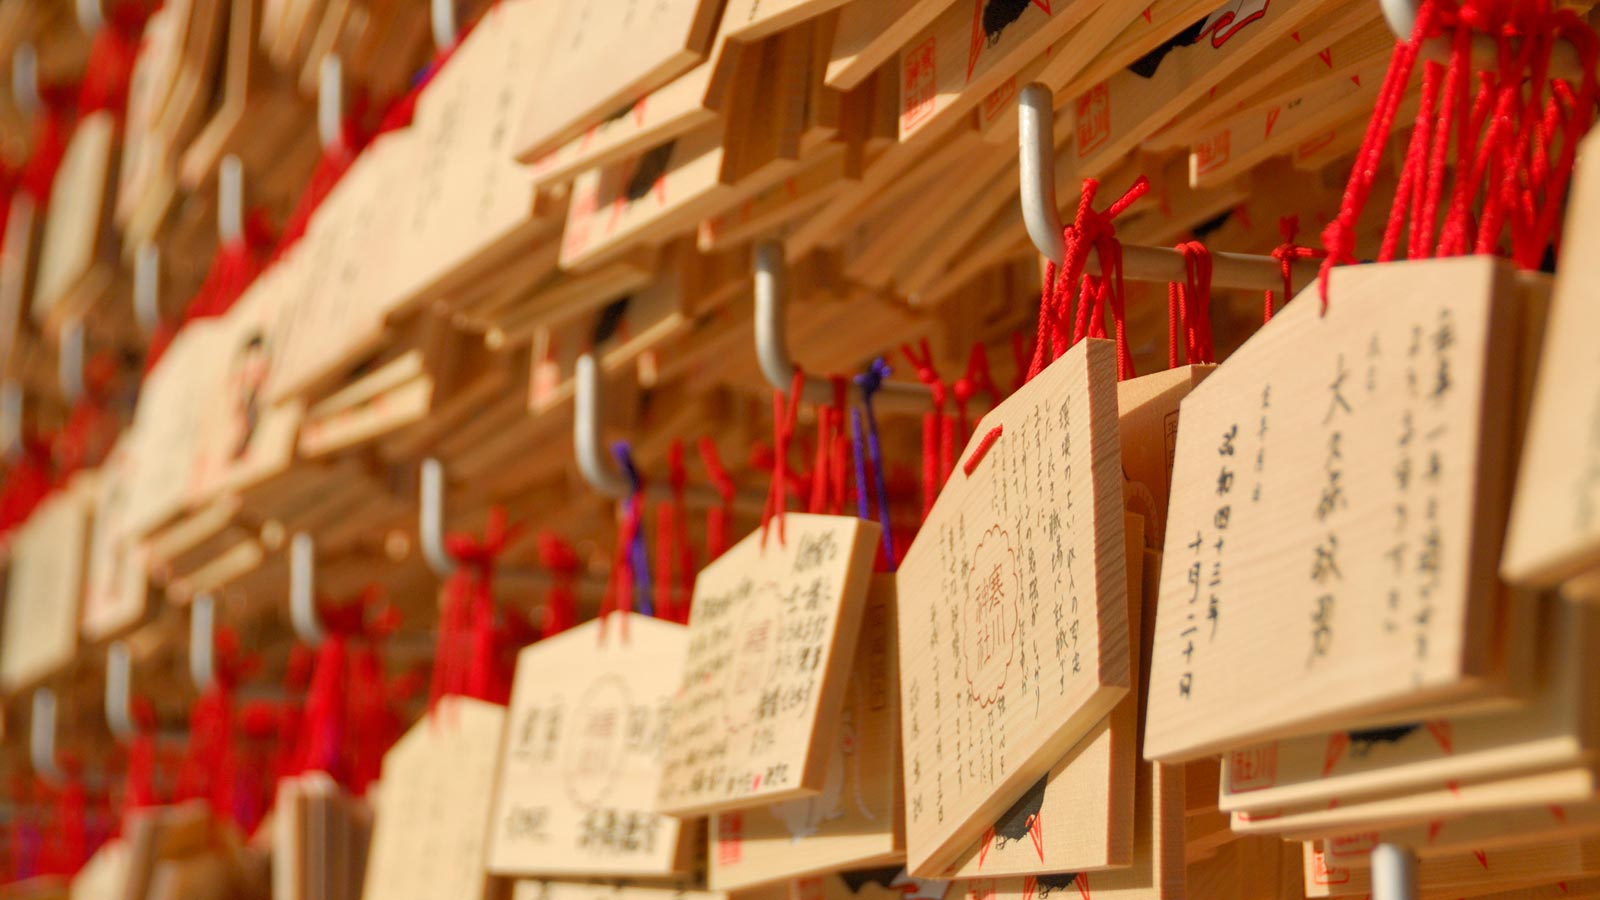 Top 10 Shrines and Temples to Visit at New Year's